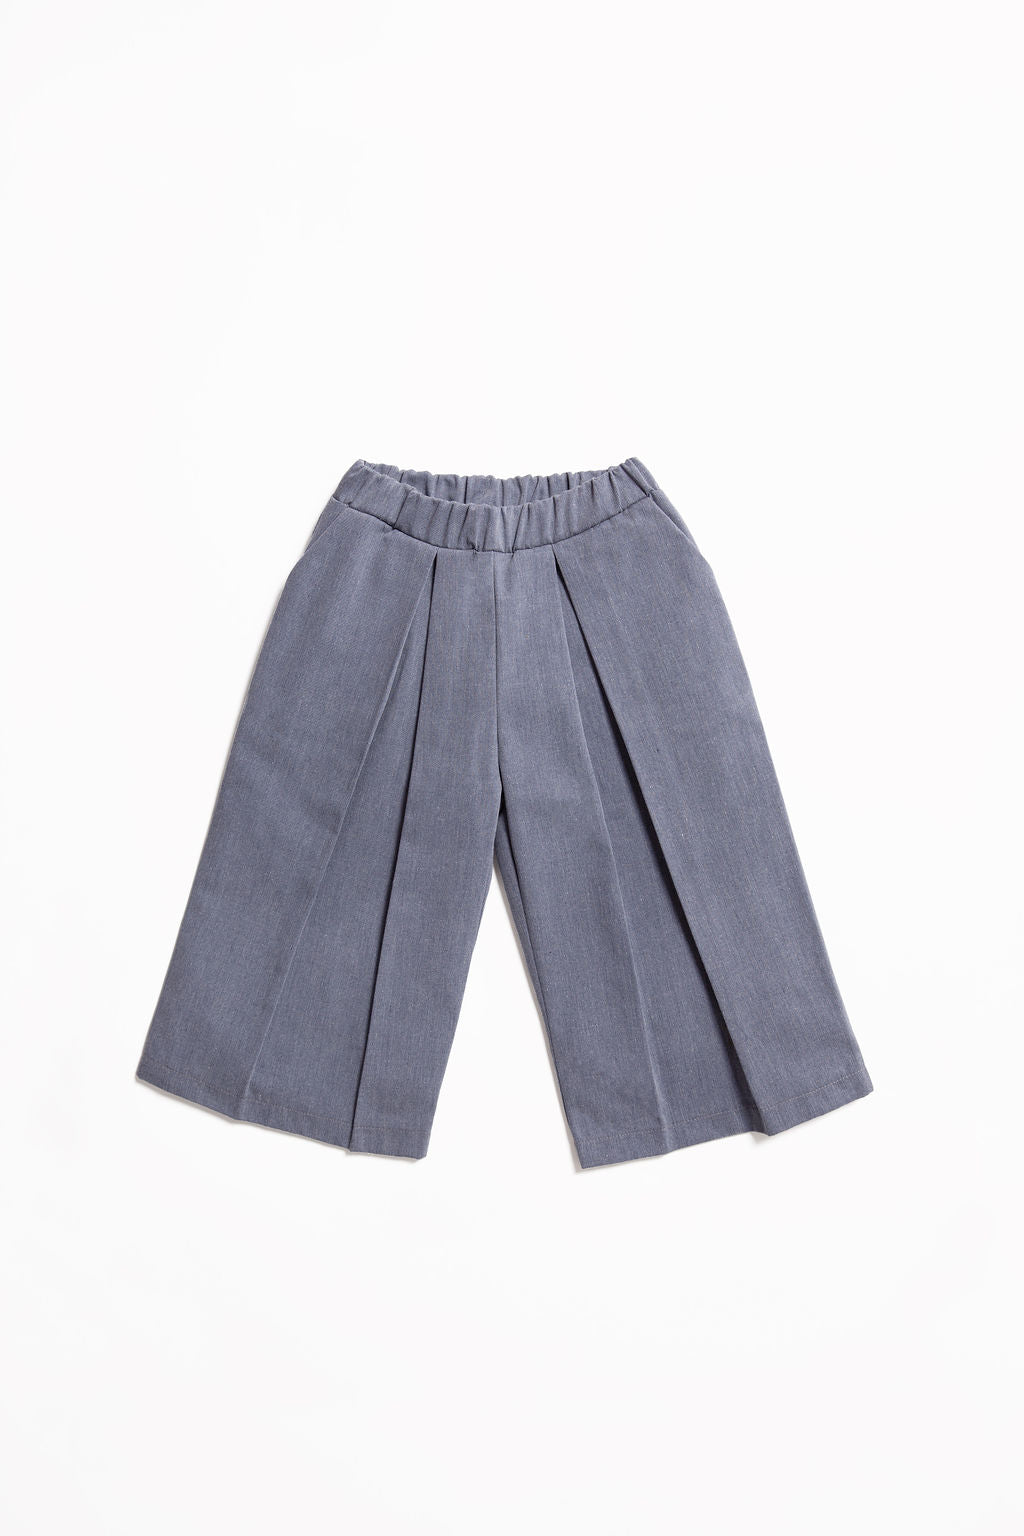 Pantaloni con pences in denim riciclato